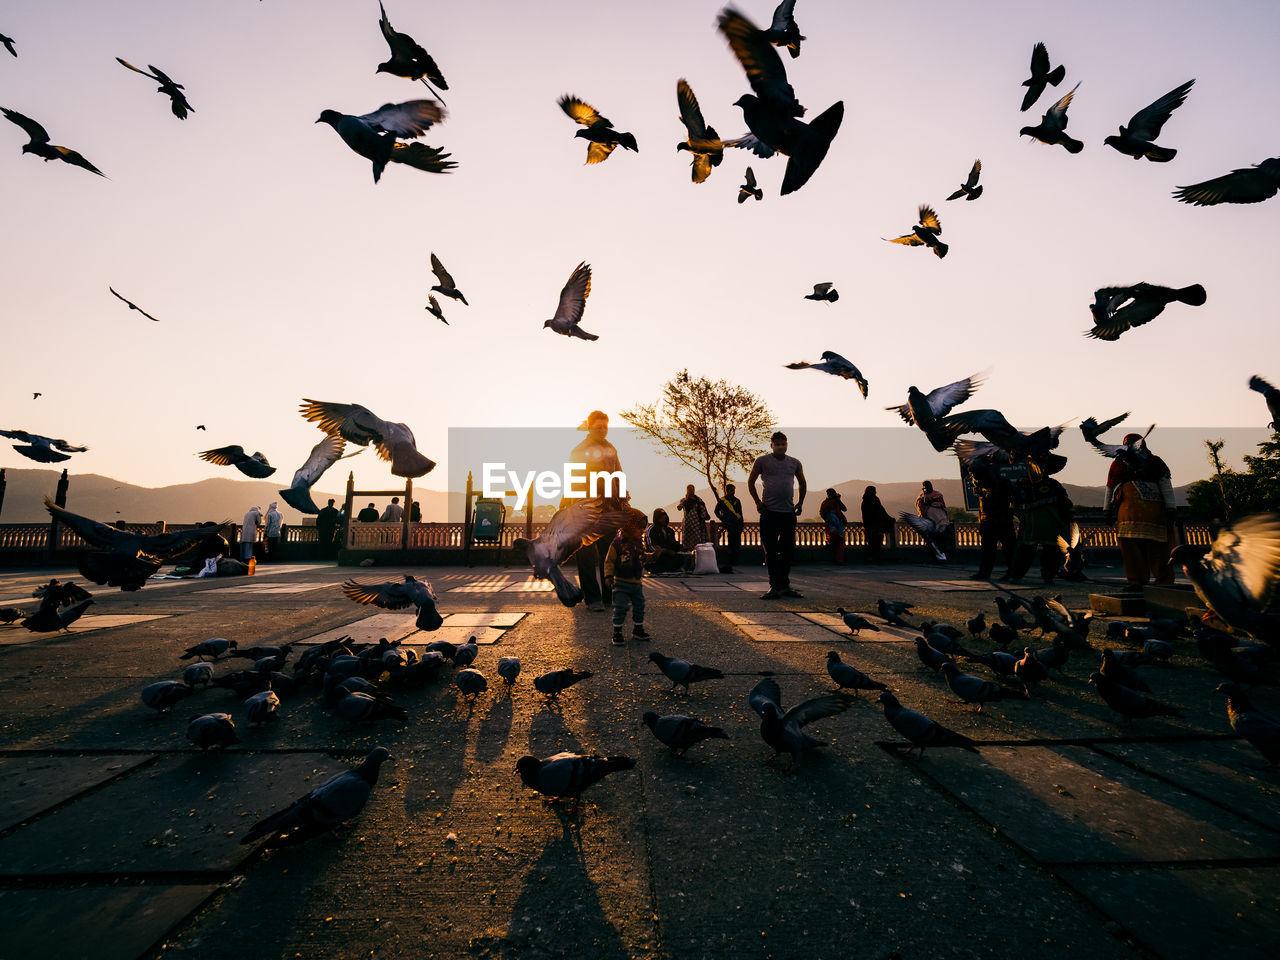 vertebrate, bird, animal, animal themes, animals in the wild, large group of animals, group of animals, flying, animal wildlife, sky, flock of birds, nature, sunset, pigeon, real people, mid-air, architecture, spread wings, street, motion